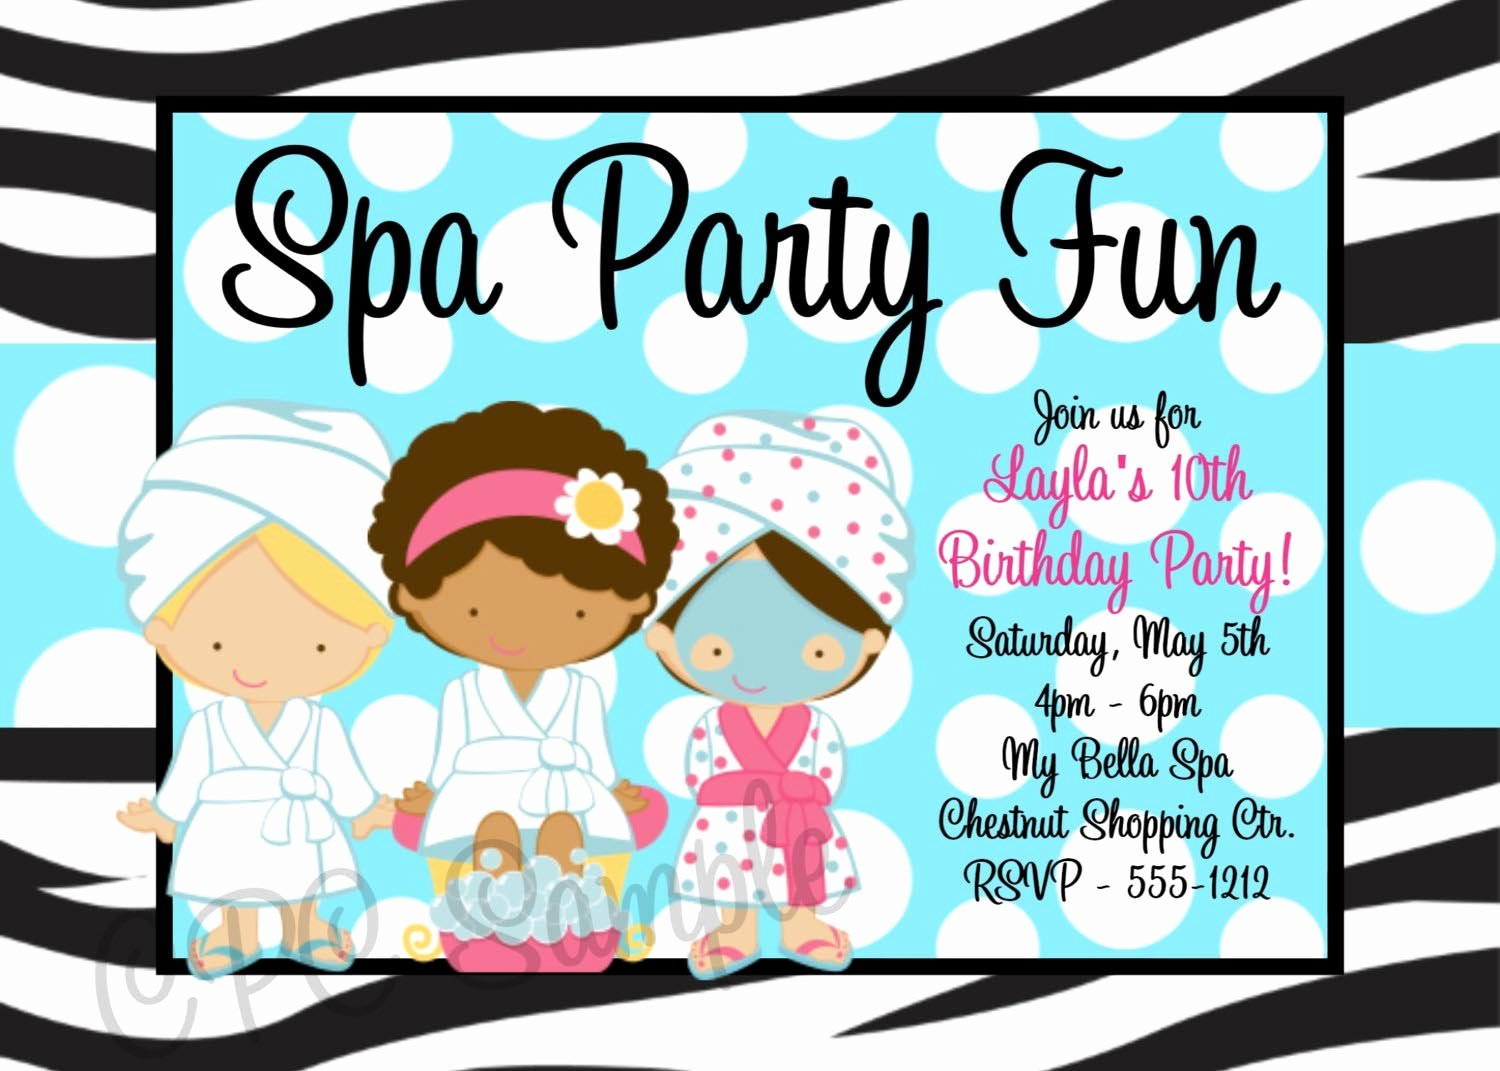 Free Spa Party Invitations Unique Printable Spa Party Invitations